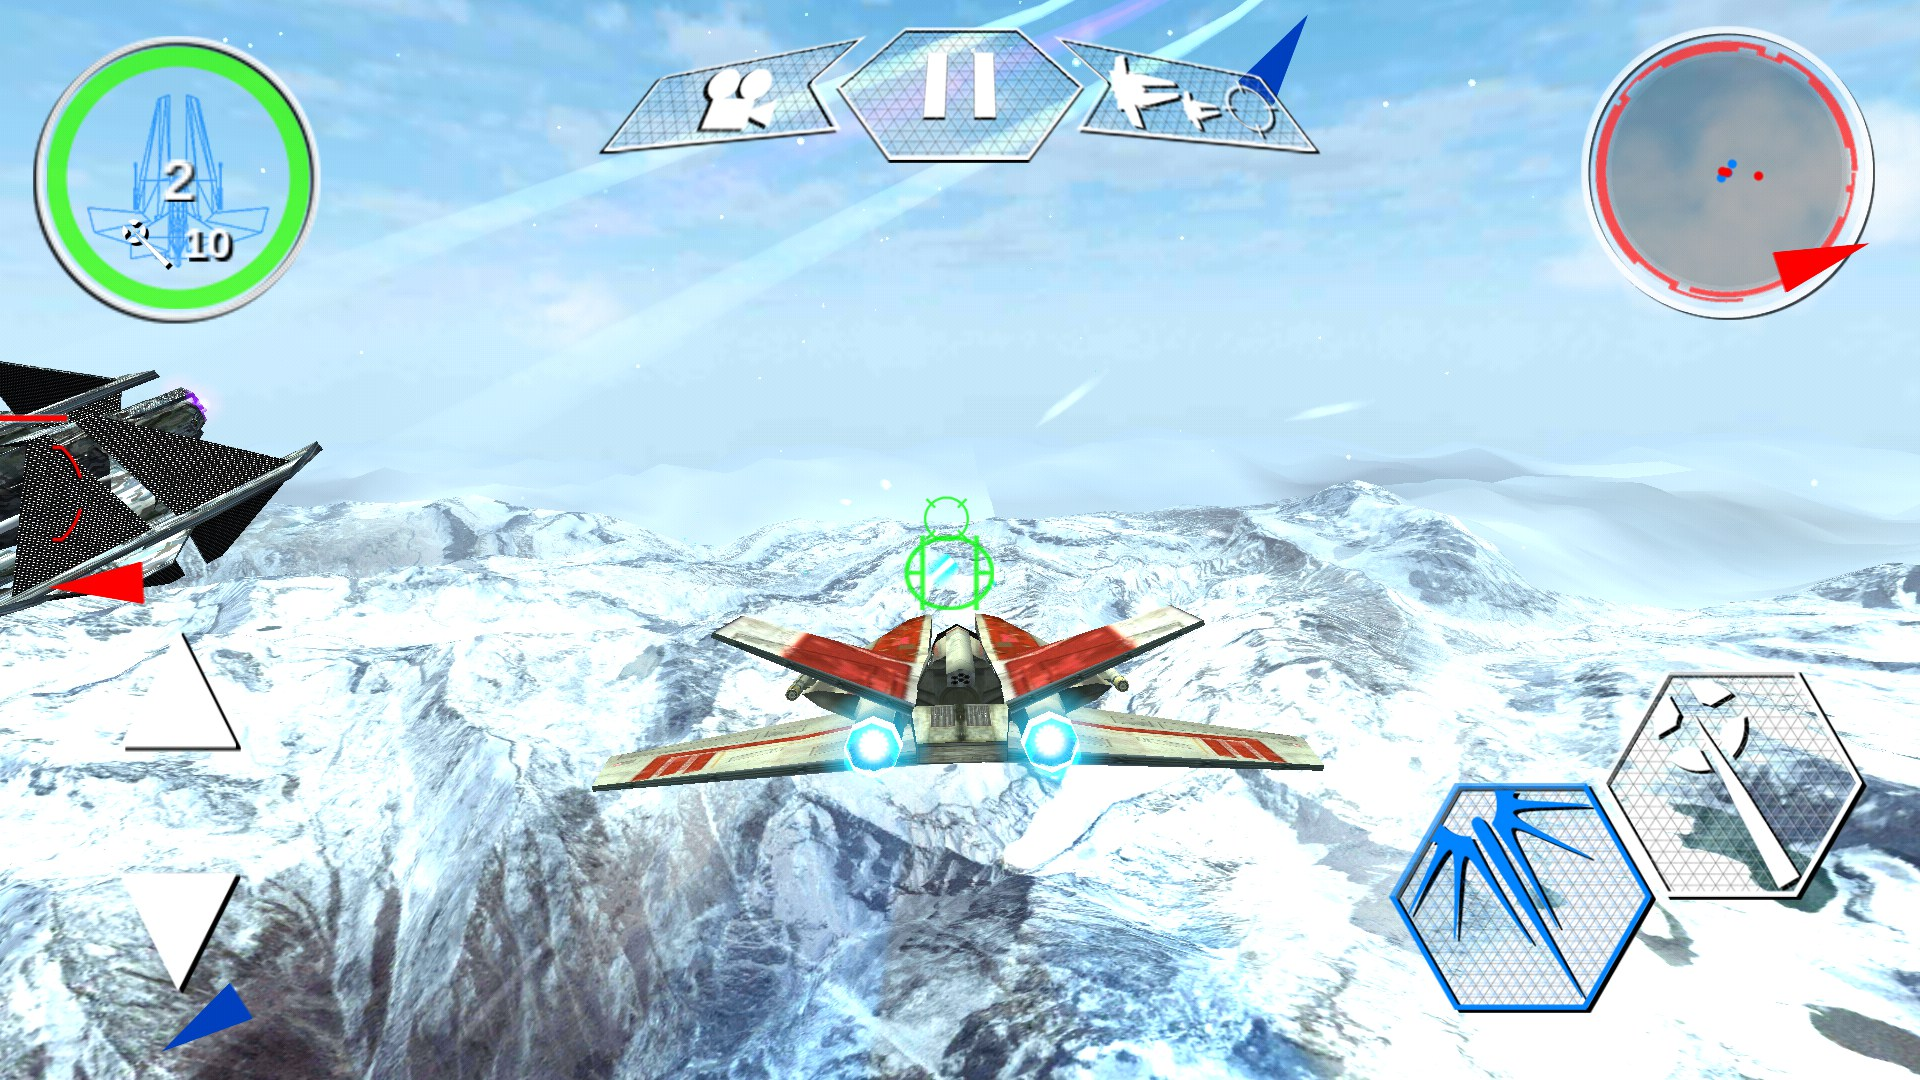 Edge of oblivion: alpha squadron 2 for android free download.